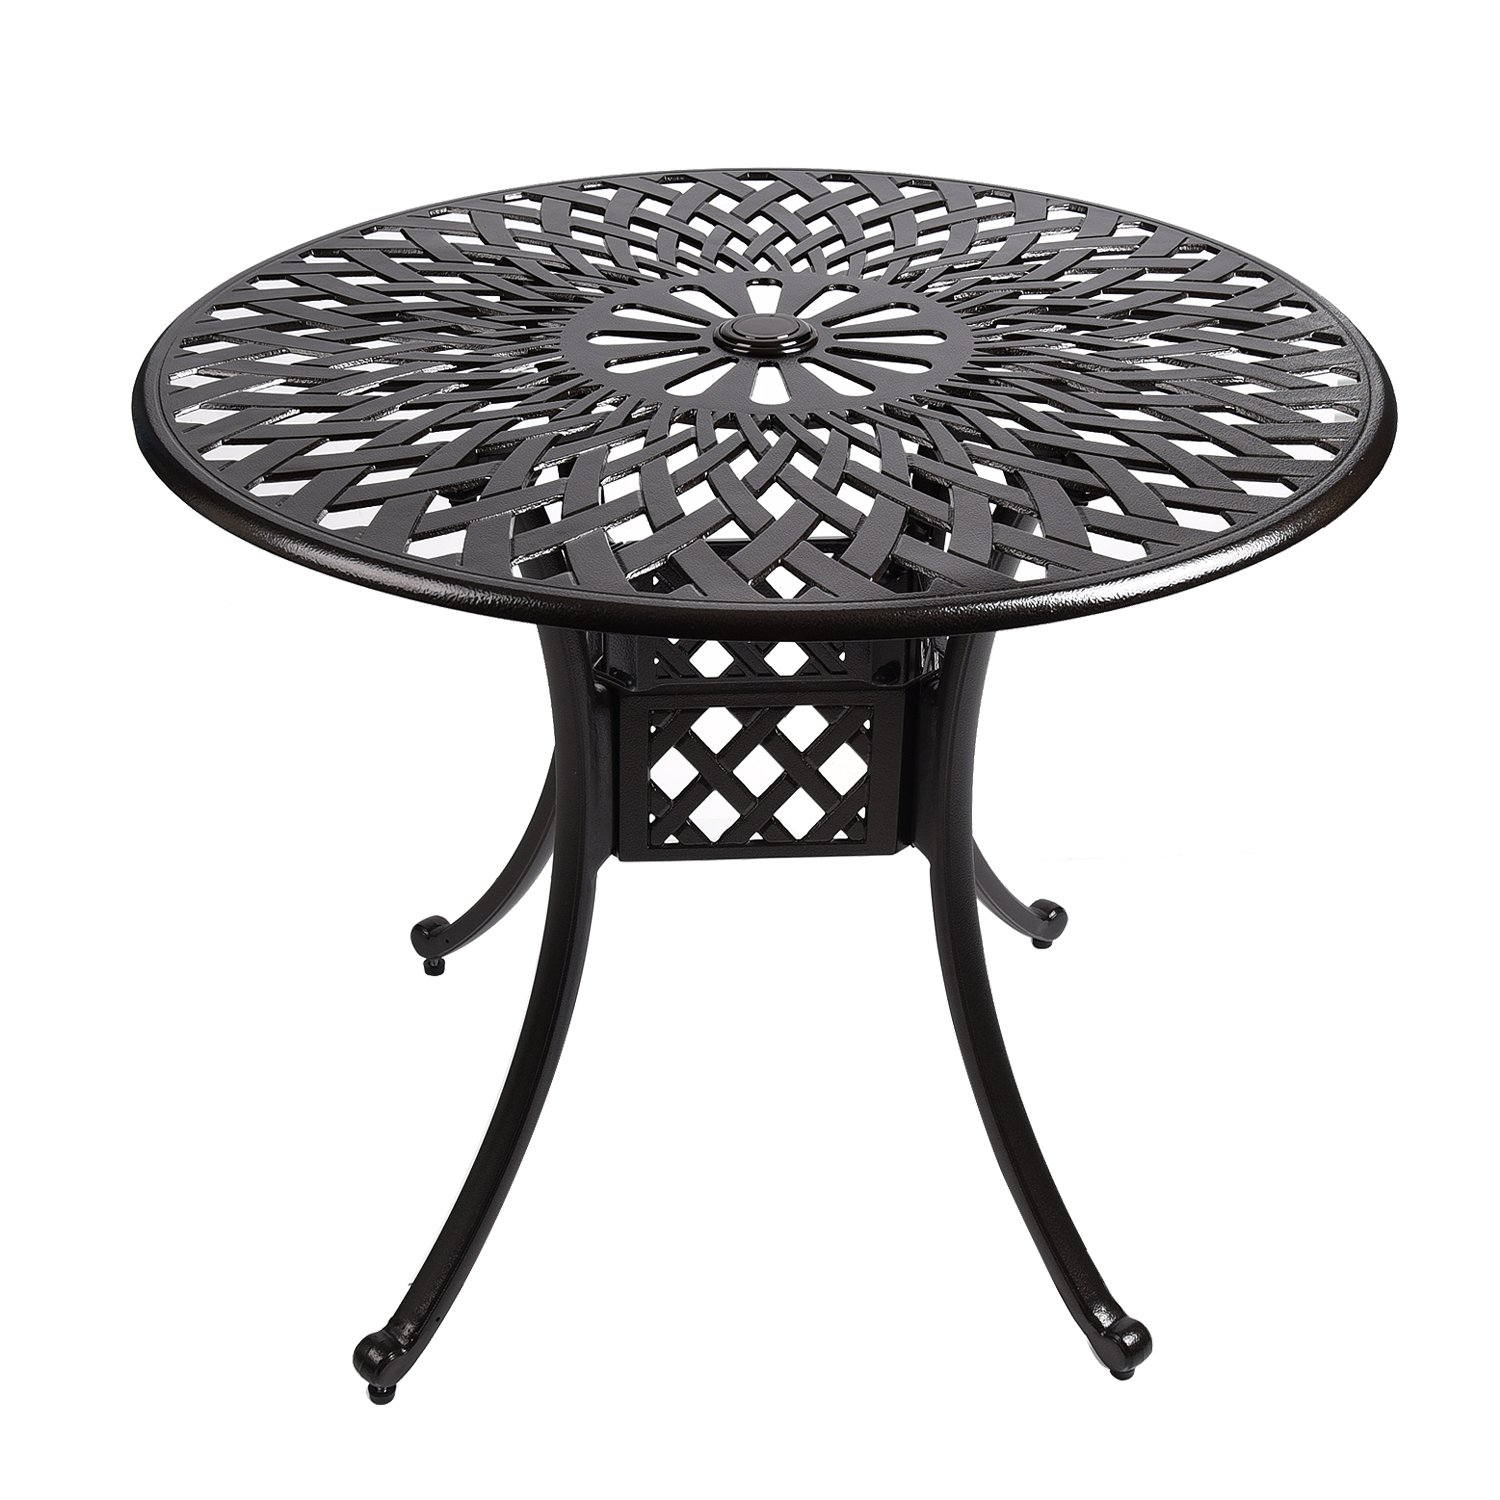 """YUSING Bistro Patio Table,35"""" Round Cast Aluminum Outdoor Dining Conversation Table with Umbrella Hole for Garden, Porch, Pool"""